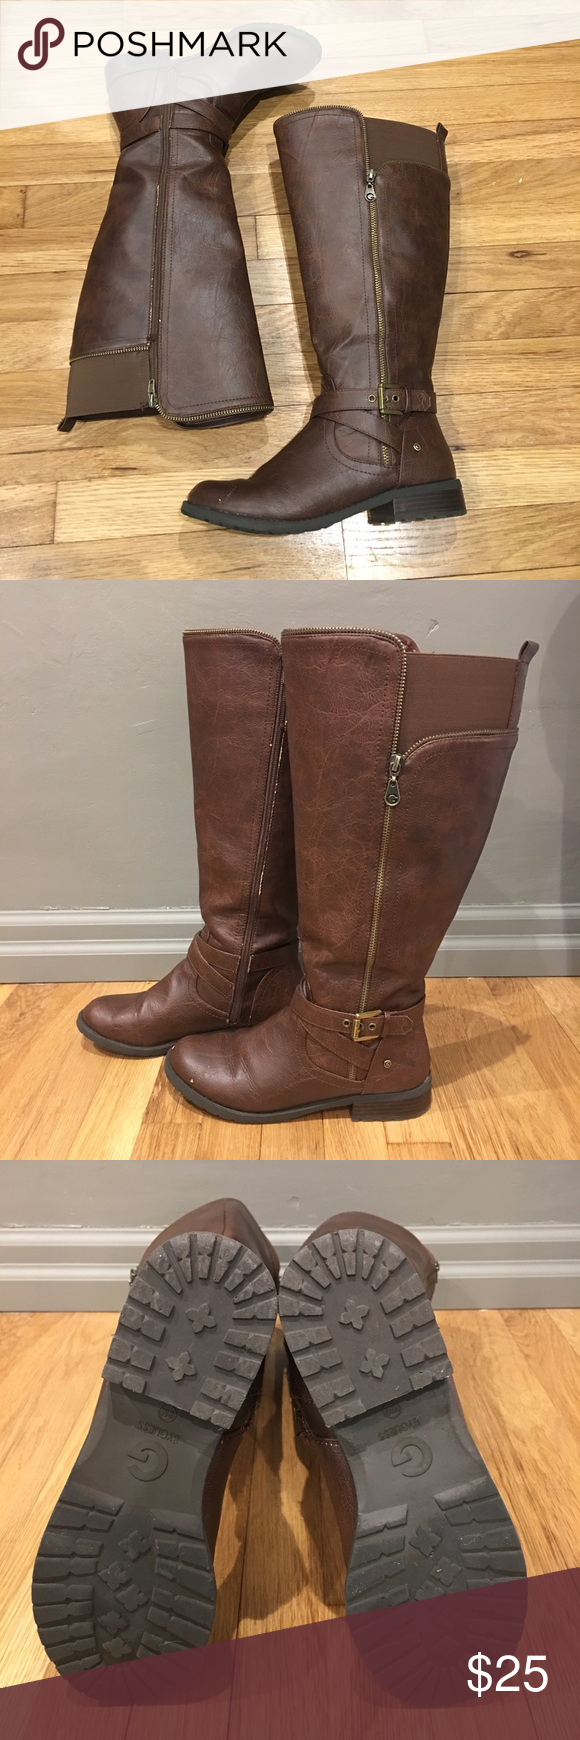 G by Guess Wide Calf Boots G by Guess brown wide calf boots. Zipper detail and buckle. Elastic on back to make closure easier.  Small nick on left toe. G by Guess Shoes Winter & Rain Boots